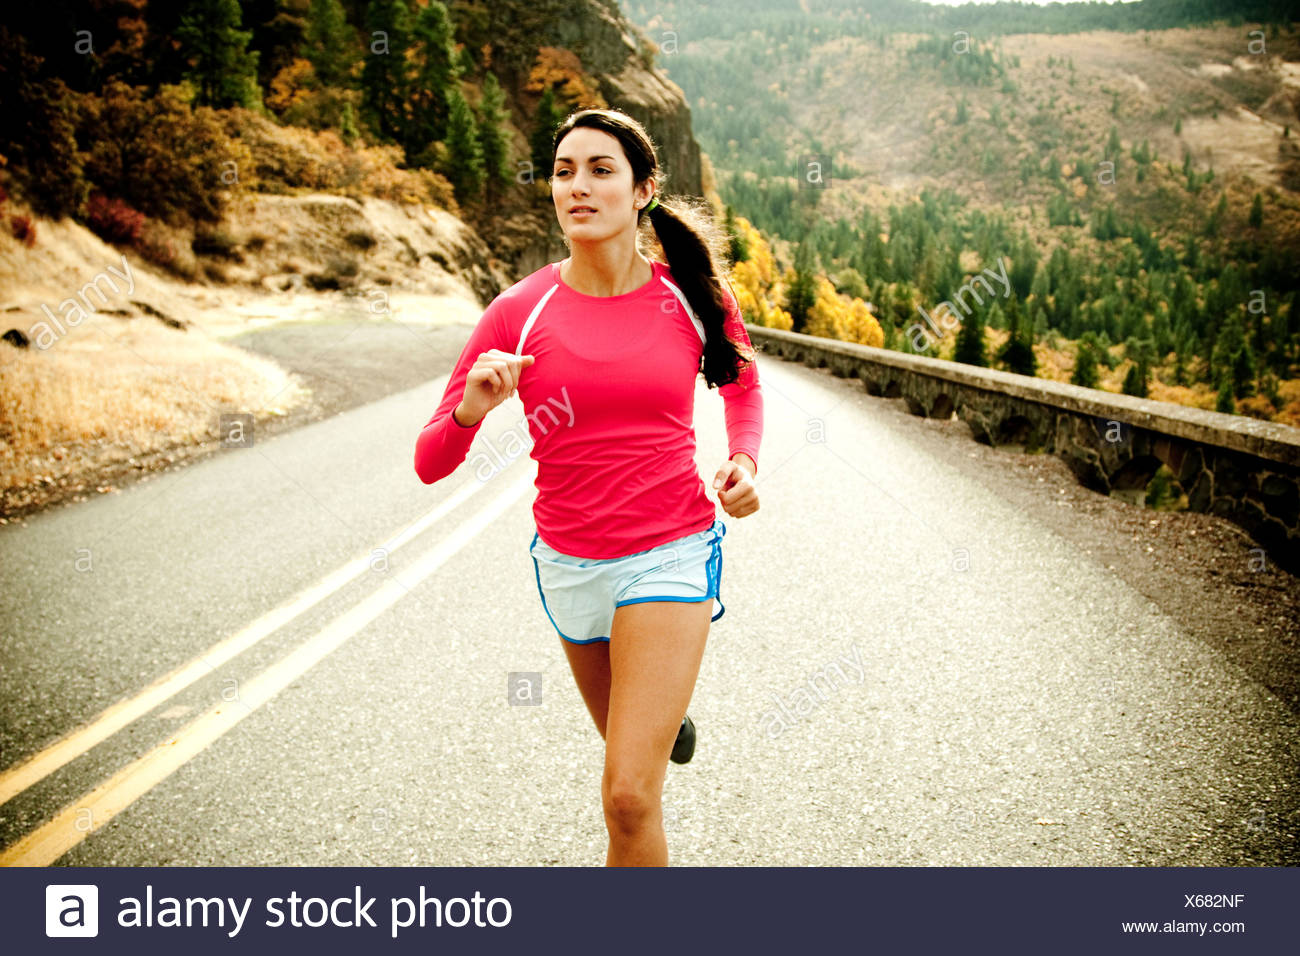 An athletic woman jogging along a deserted road on a beautiful fall day. - Stock Image